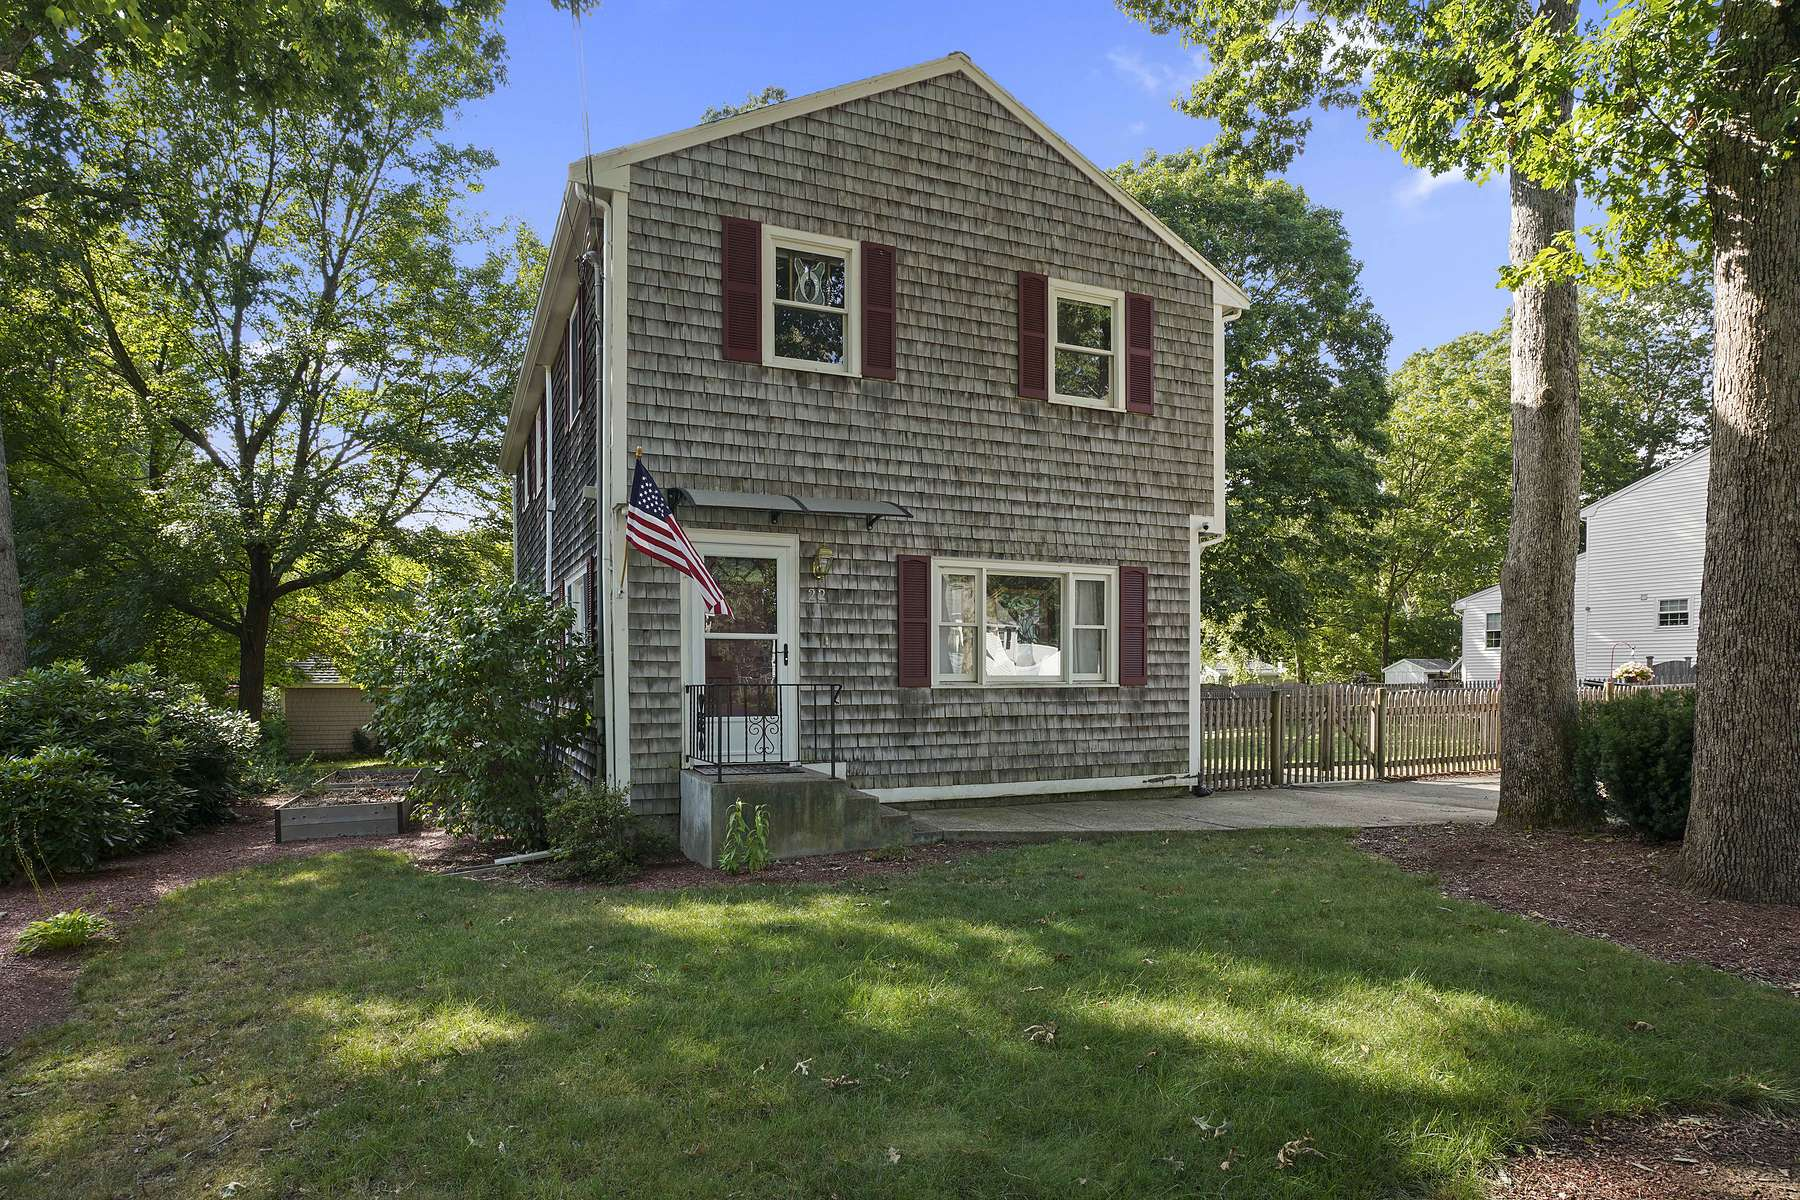 Single Family Homes for Sale at 22 Edgewood Rd Holbrook, Massachusetts 02343 United States